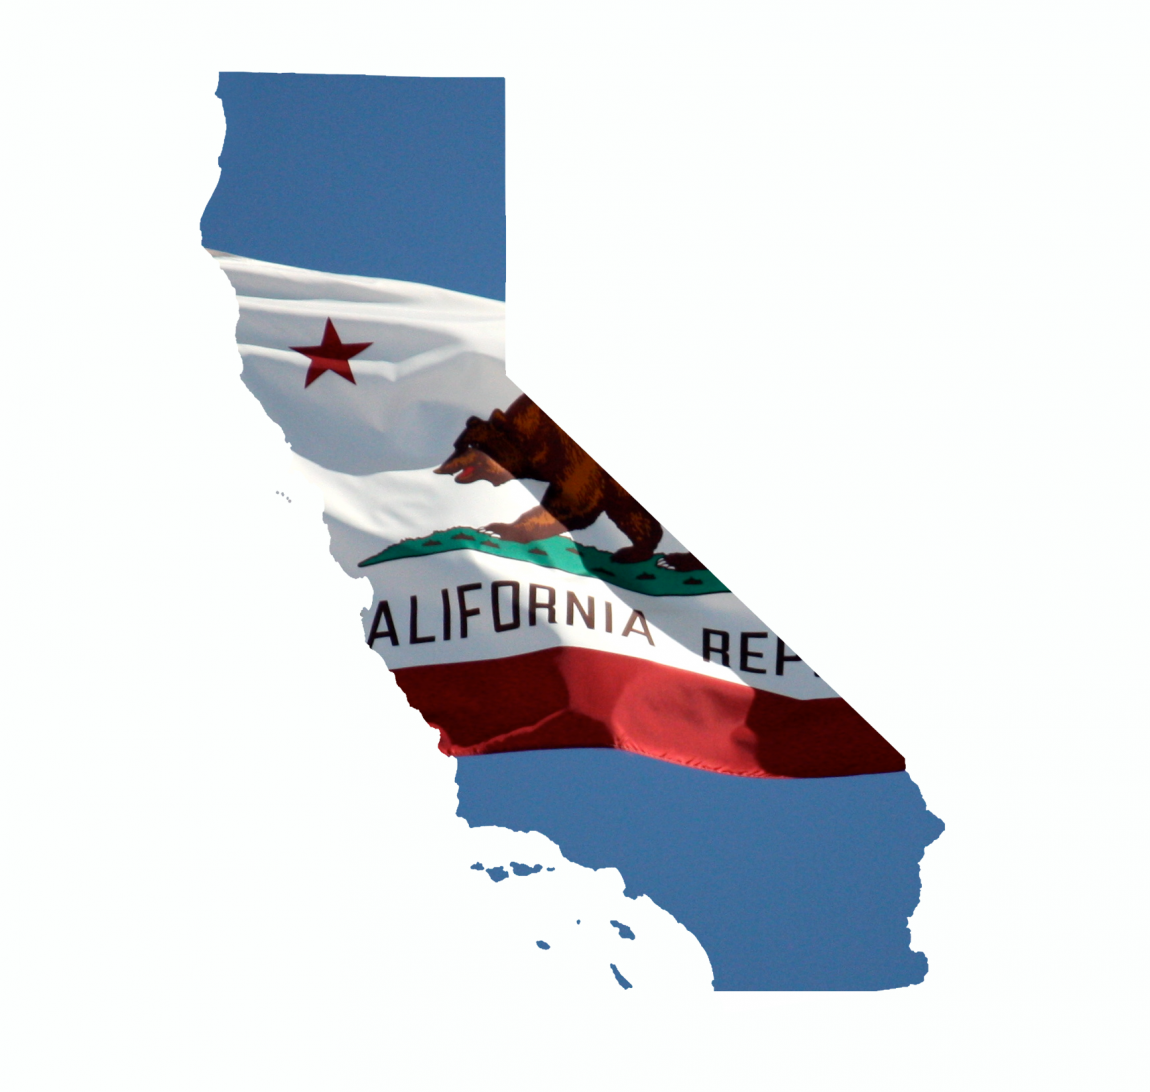 California can continue to be an inspiration to the world